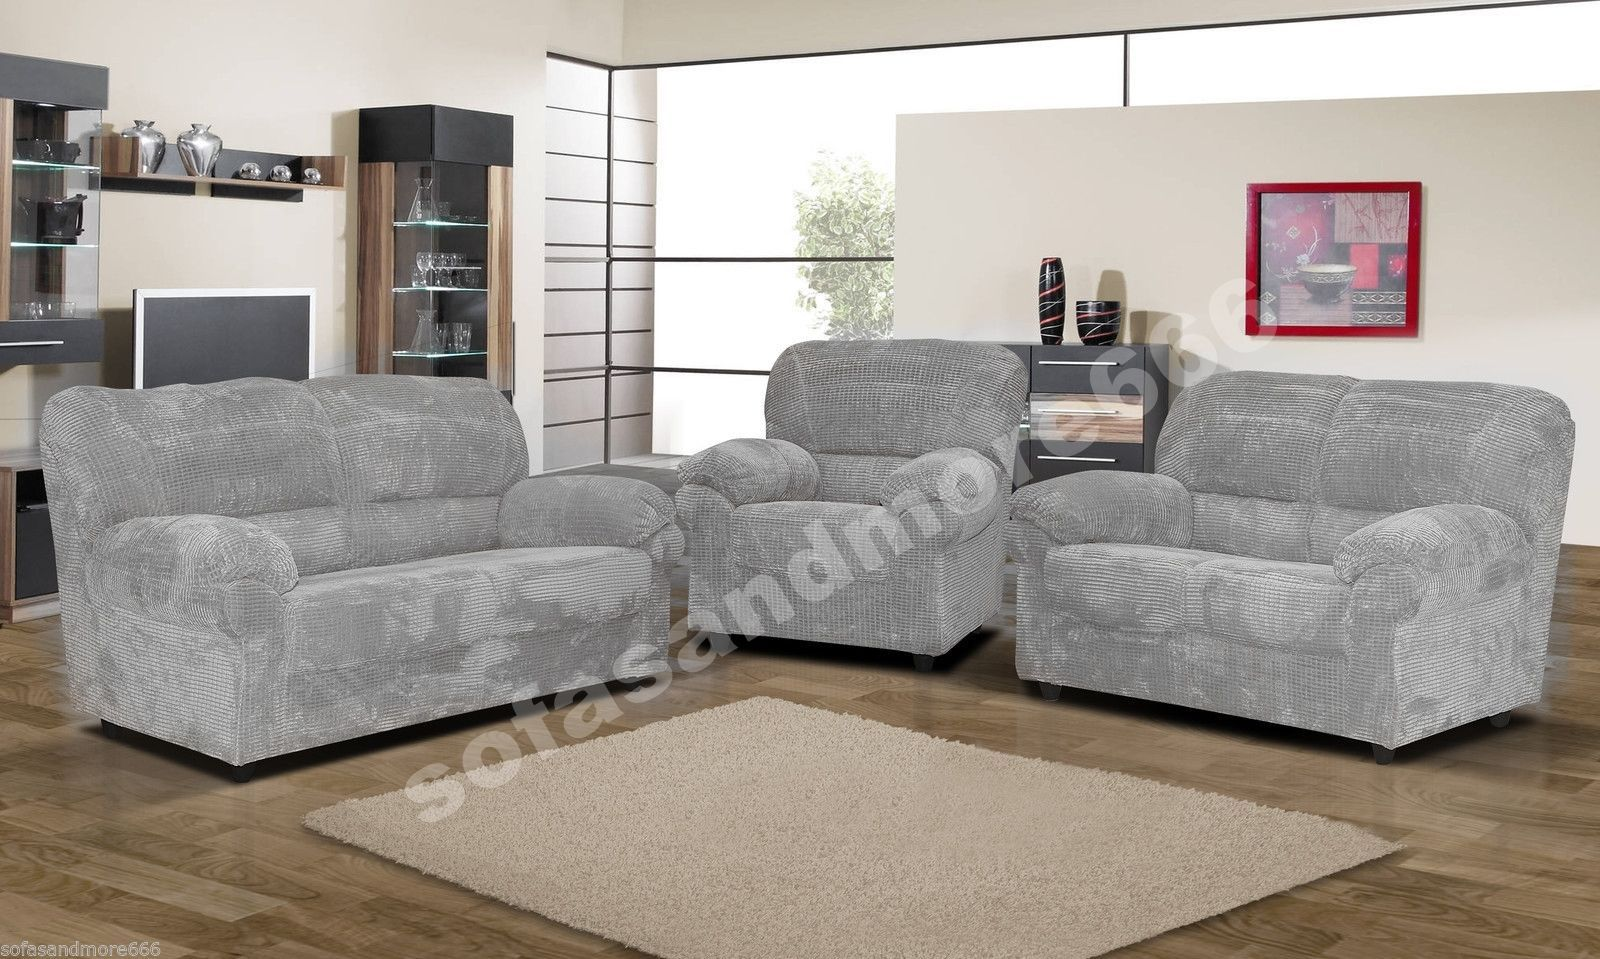 Sofa Set Brand New Black Fabric Candy Fabrics Brown Furniture Chang E 3 Leather